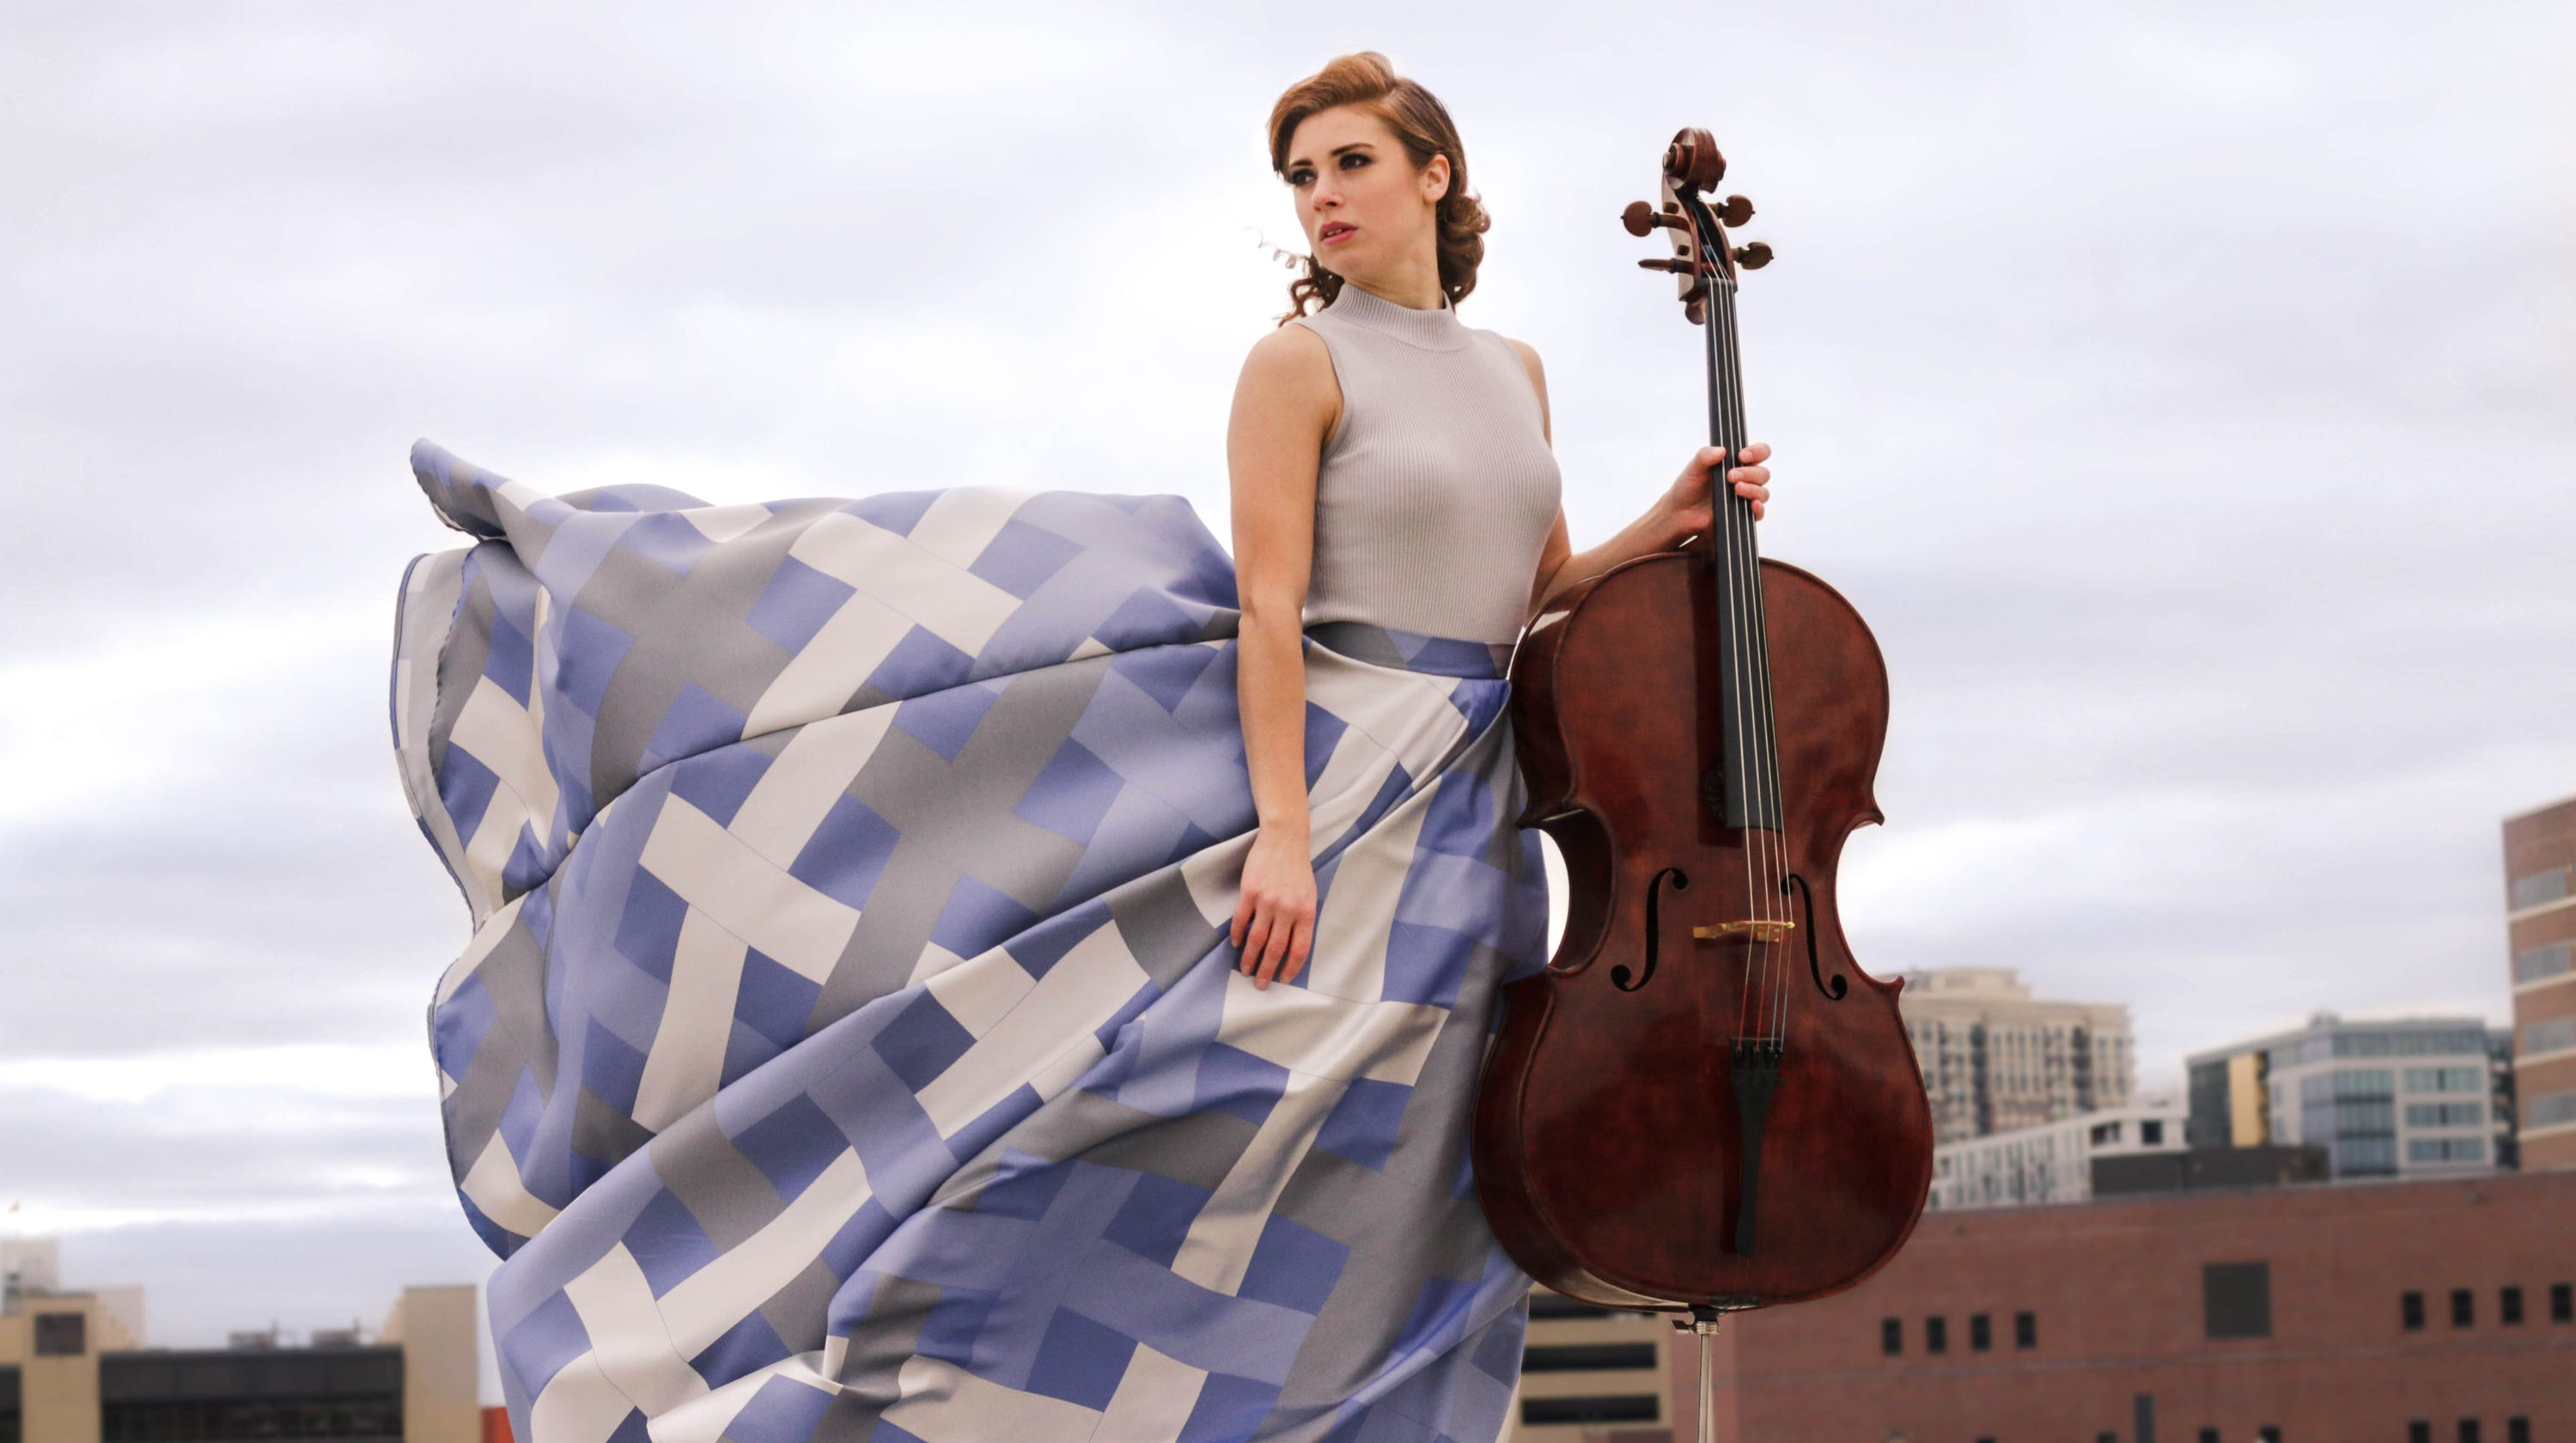 Tallahassee Symphony Orchestra offers free tickets to furloughed